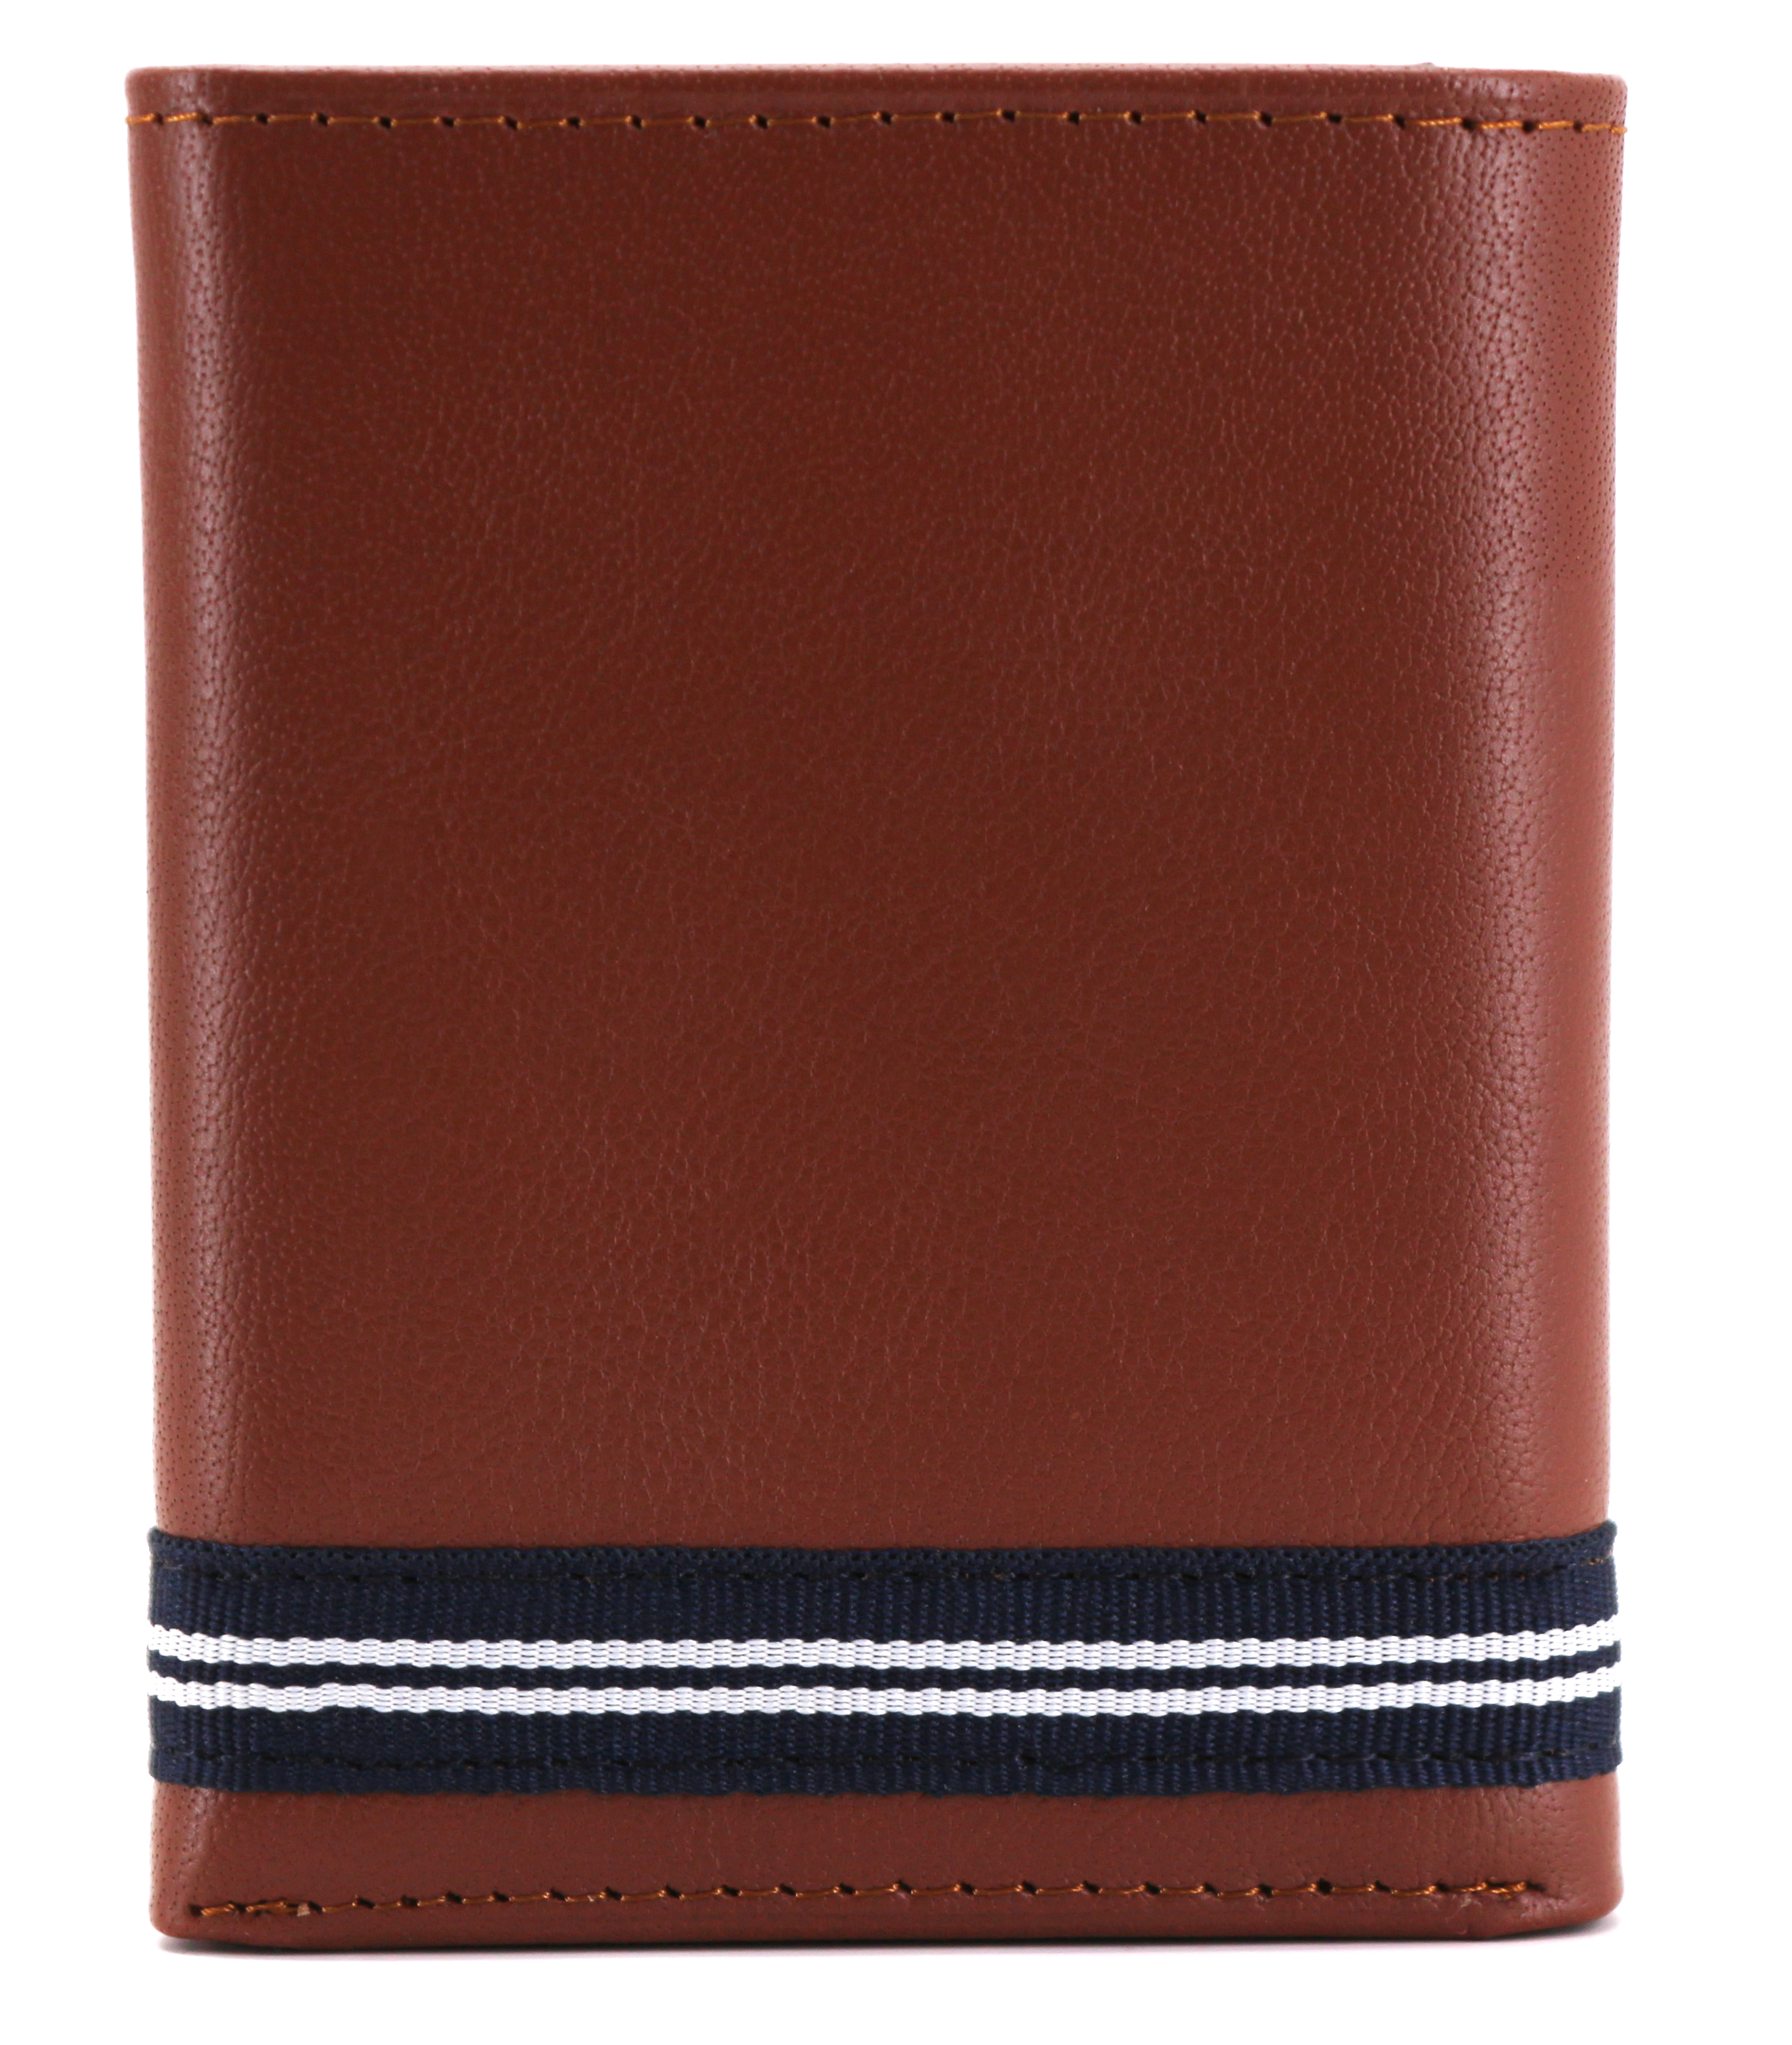 Nautica-Men-039-s-Genuine-Leather-Credit-Card-Id-Holder-Trifold-Wallet thumbnail 24